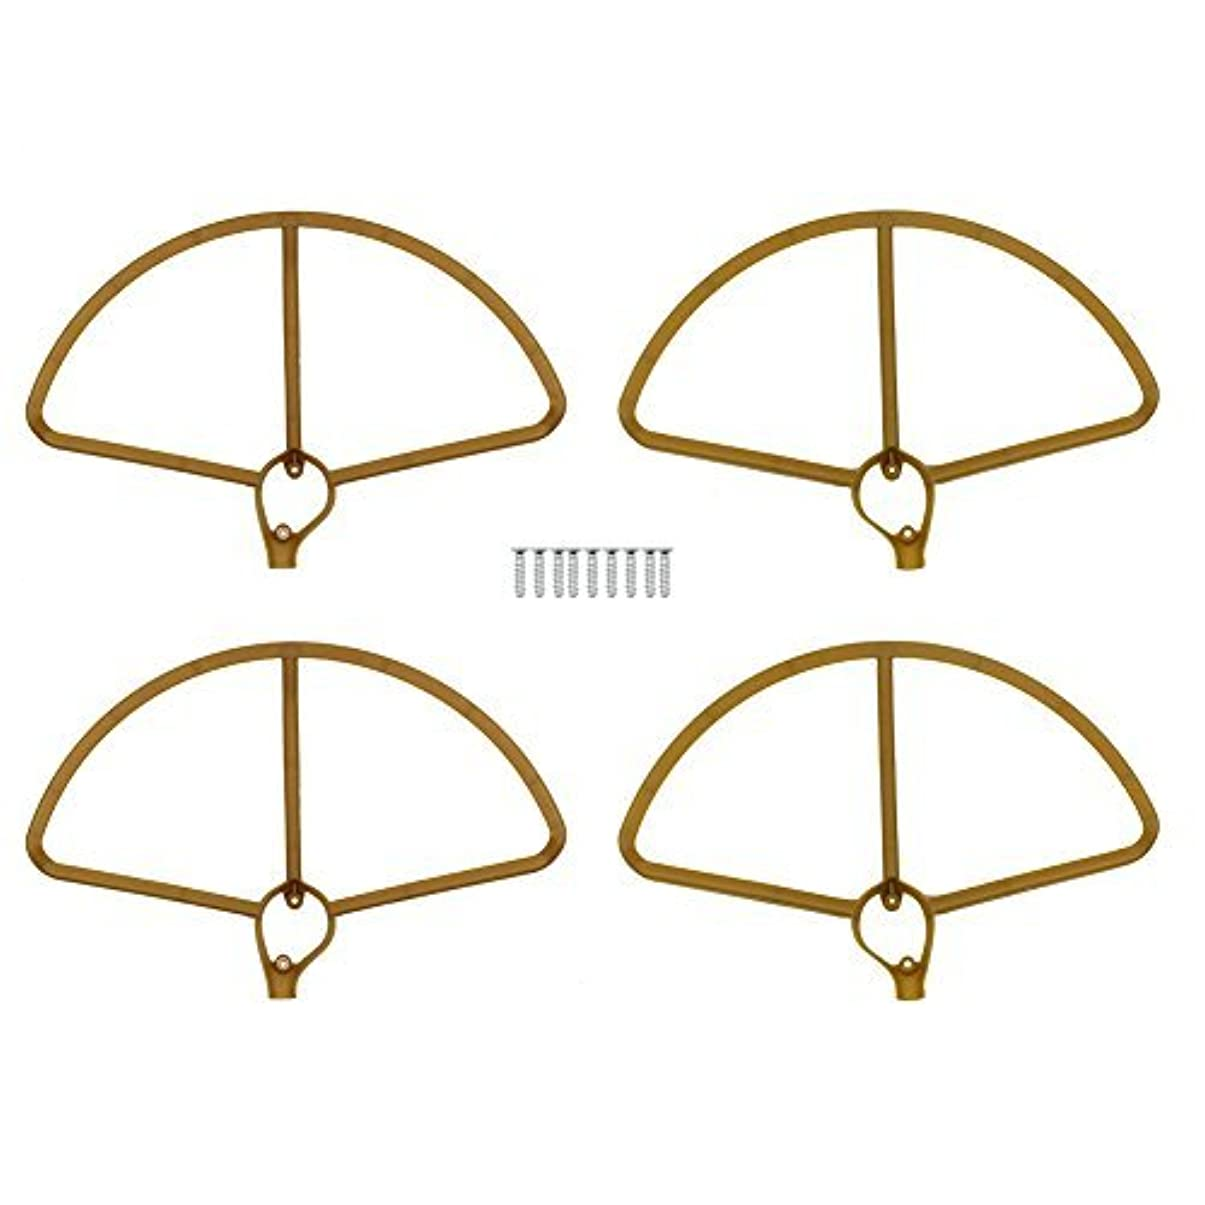 結婚どうしたの効果的にBTG Propeller Guards for Hubsan H501S/H501C - Color: Golden Brown or White (Golden Brown) [並行輸入品]